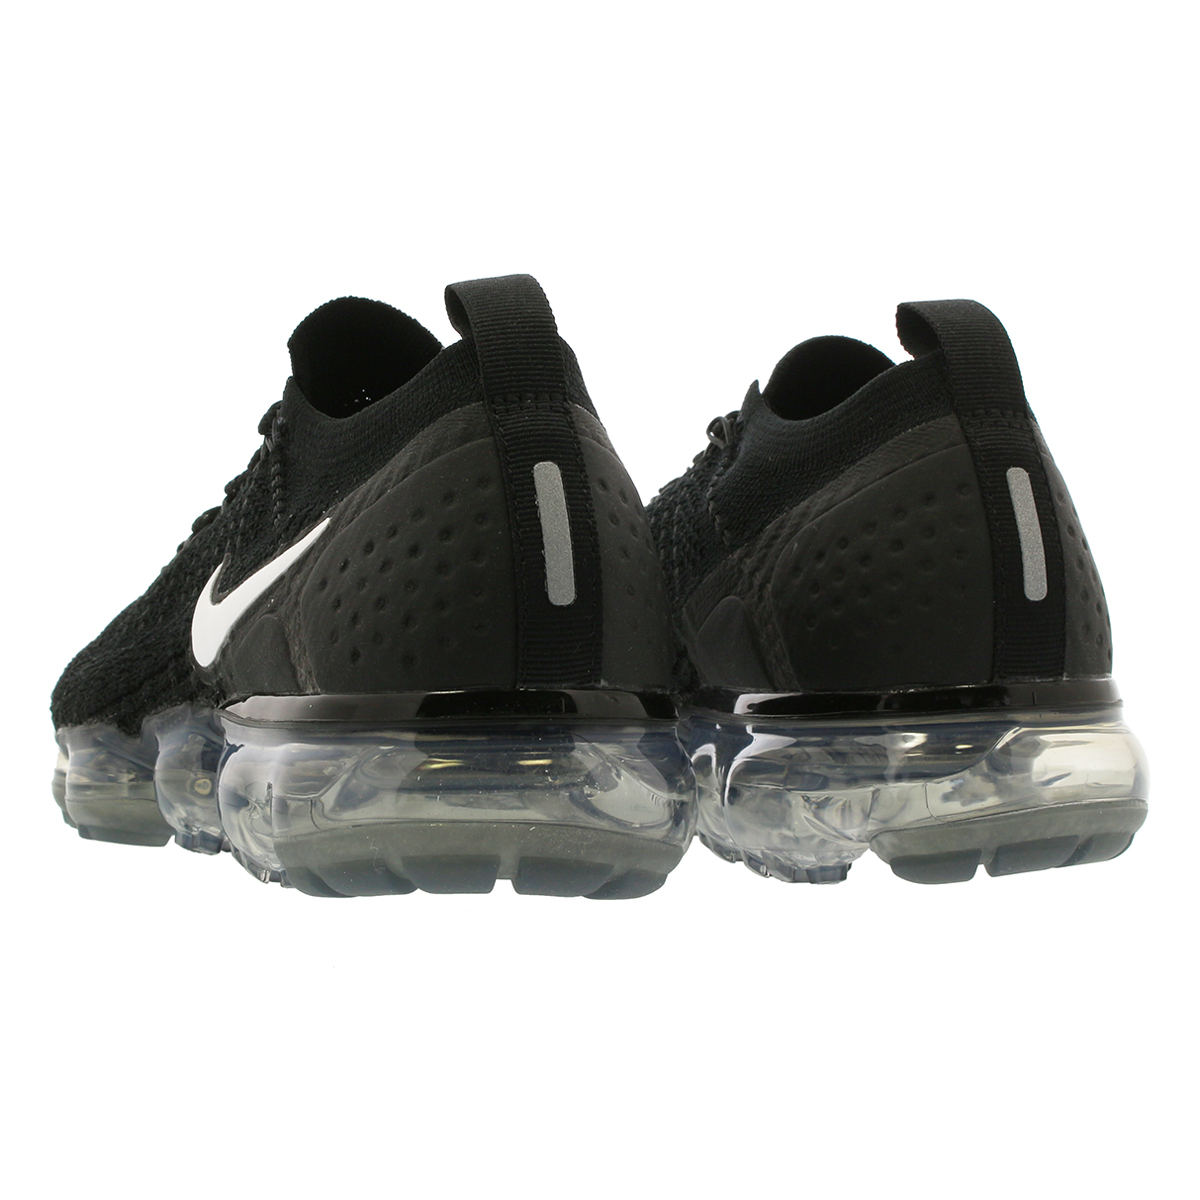 669763611a836 NIKE WMNS AIR VAPORMAX FLYKNIT 2 Nike women vapor max fried food knit  BLACK/WHITE/DARK GREY/METALLIC SILVER 942,843-001